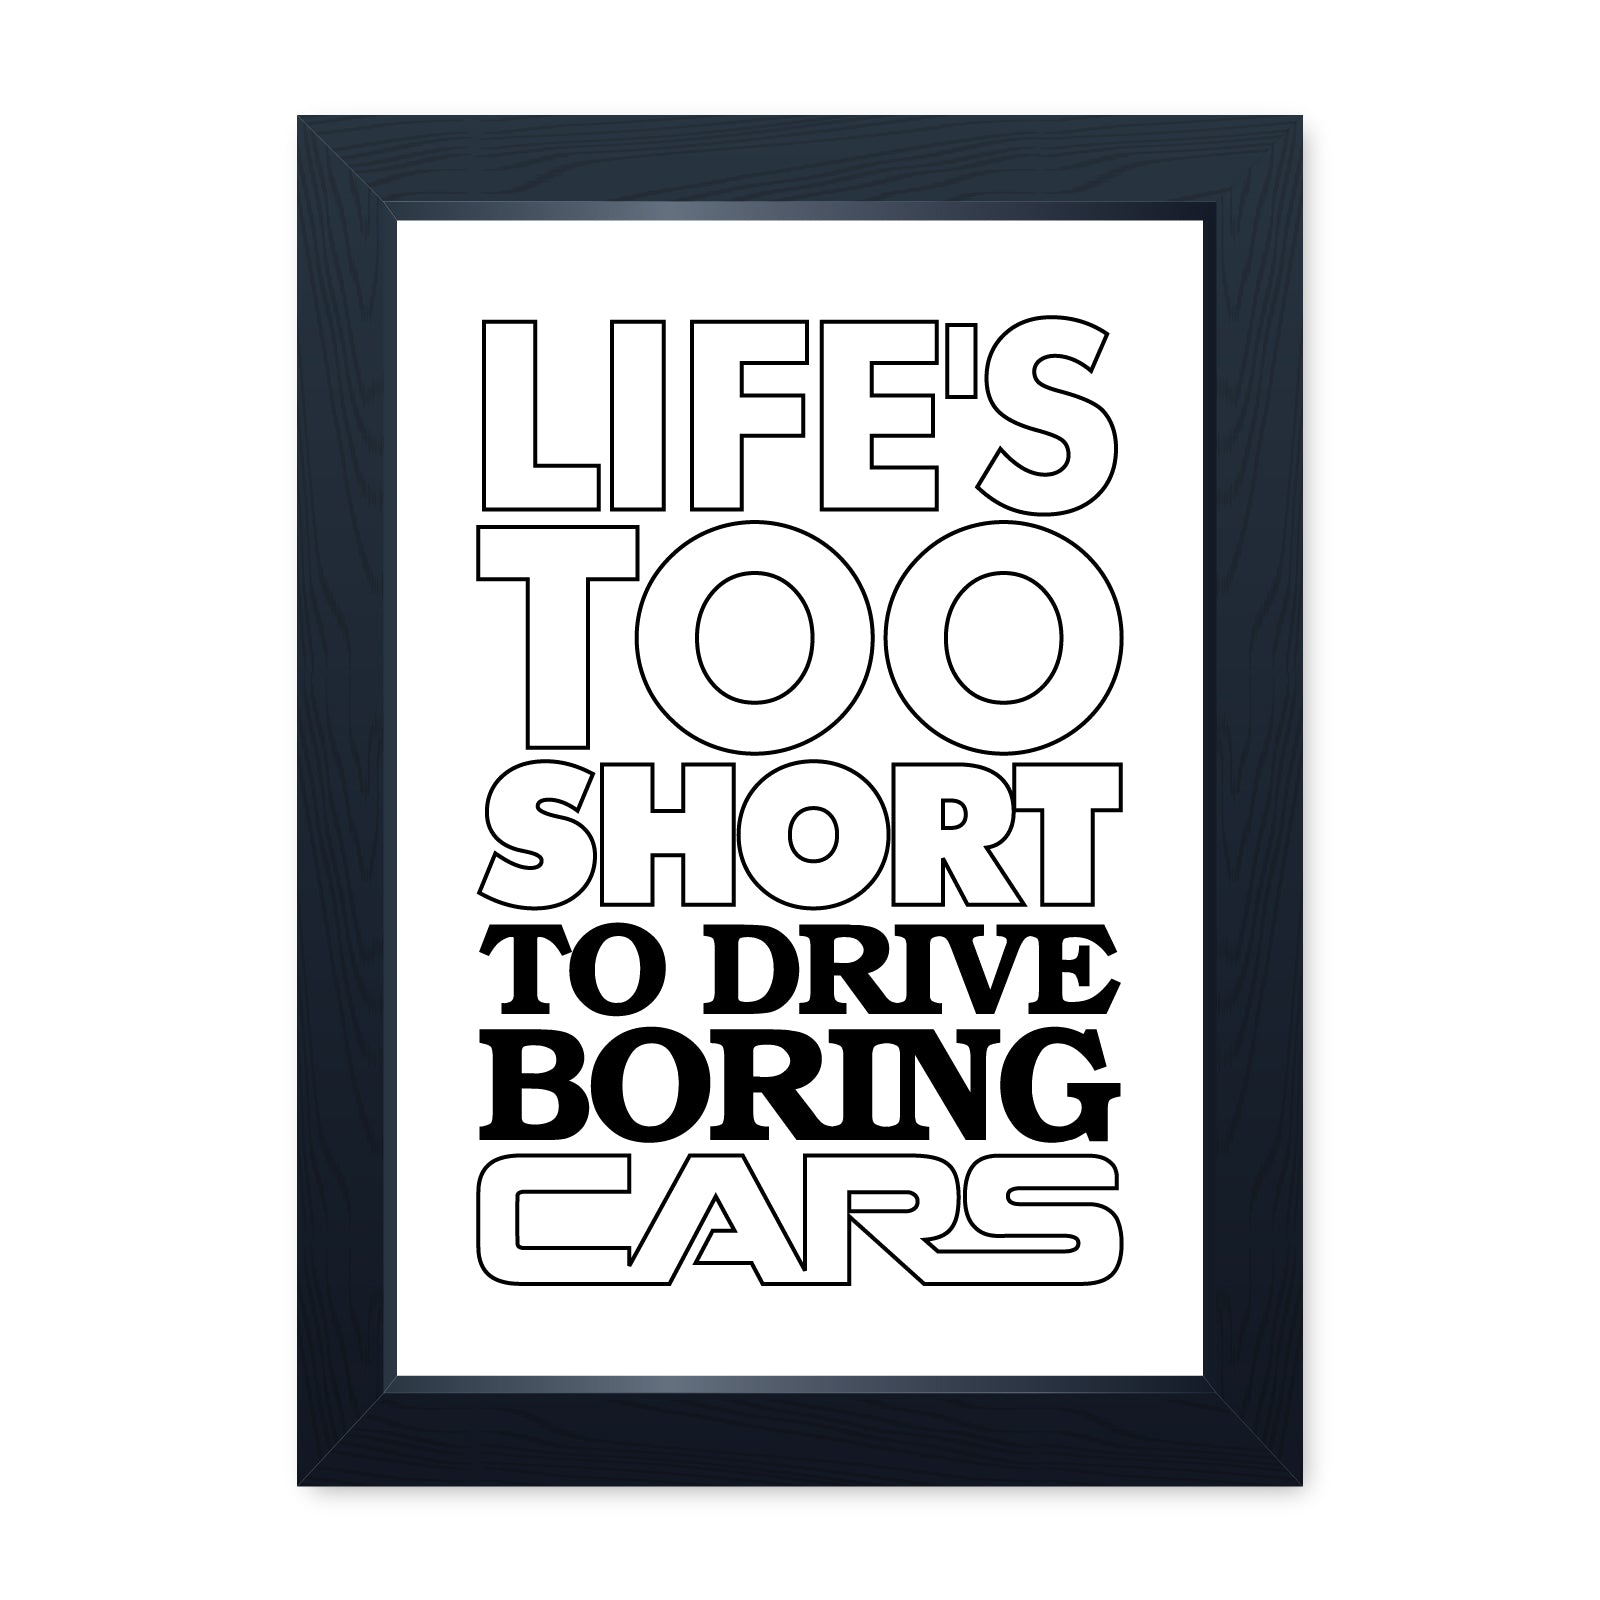 Lifes Too Short To Drive Boring Cars, Quality Framed Print - Home Decor Kitchen Bathroom Man Cave Wall Art